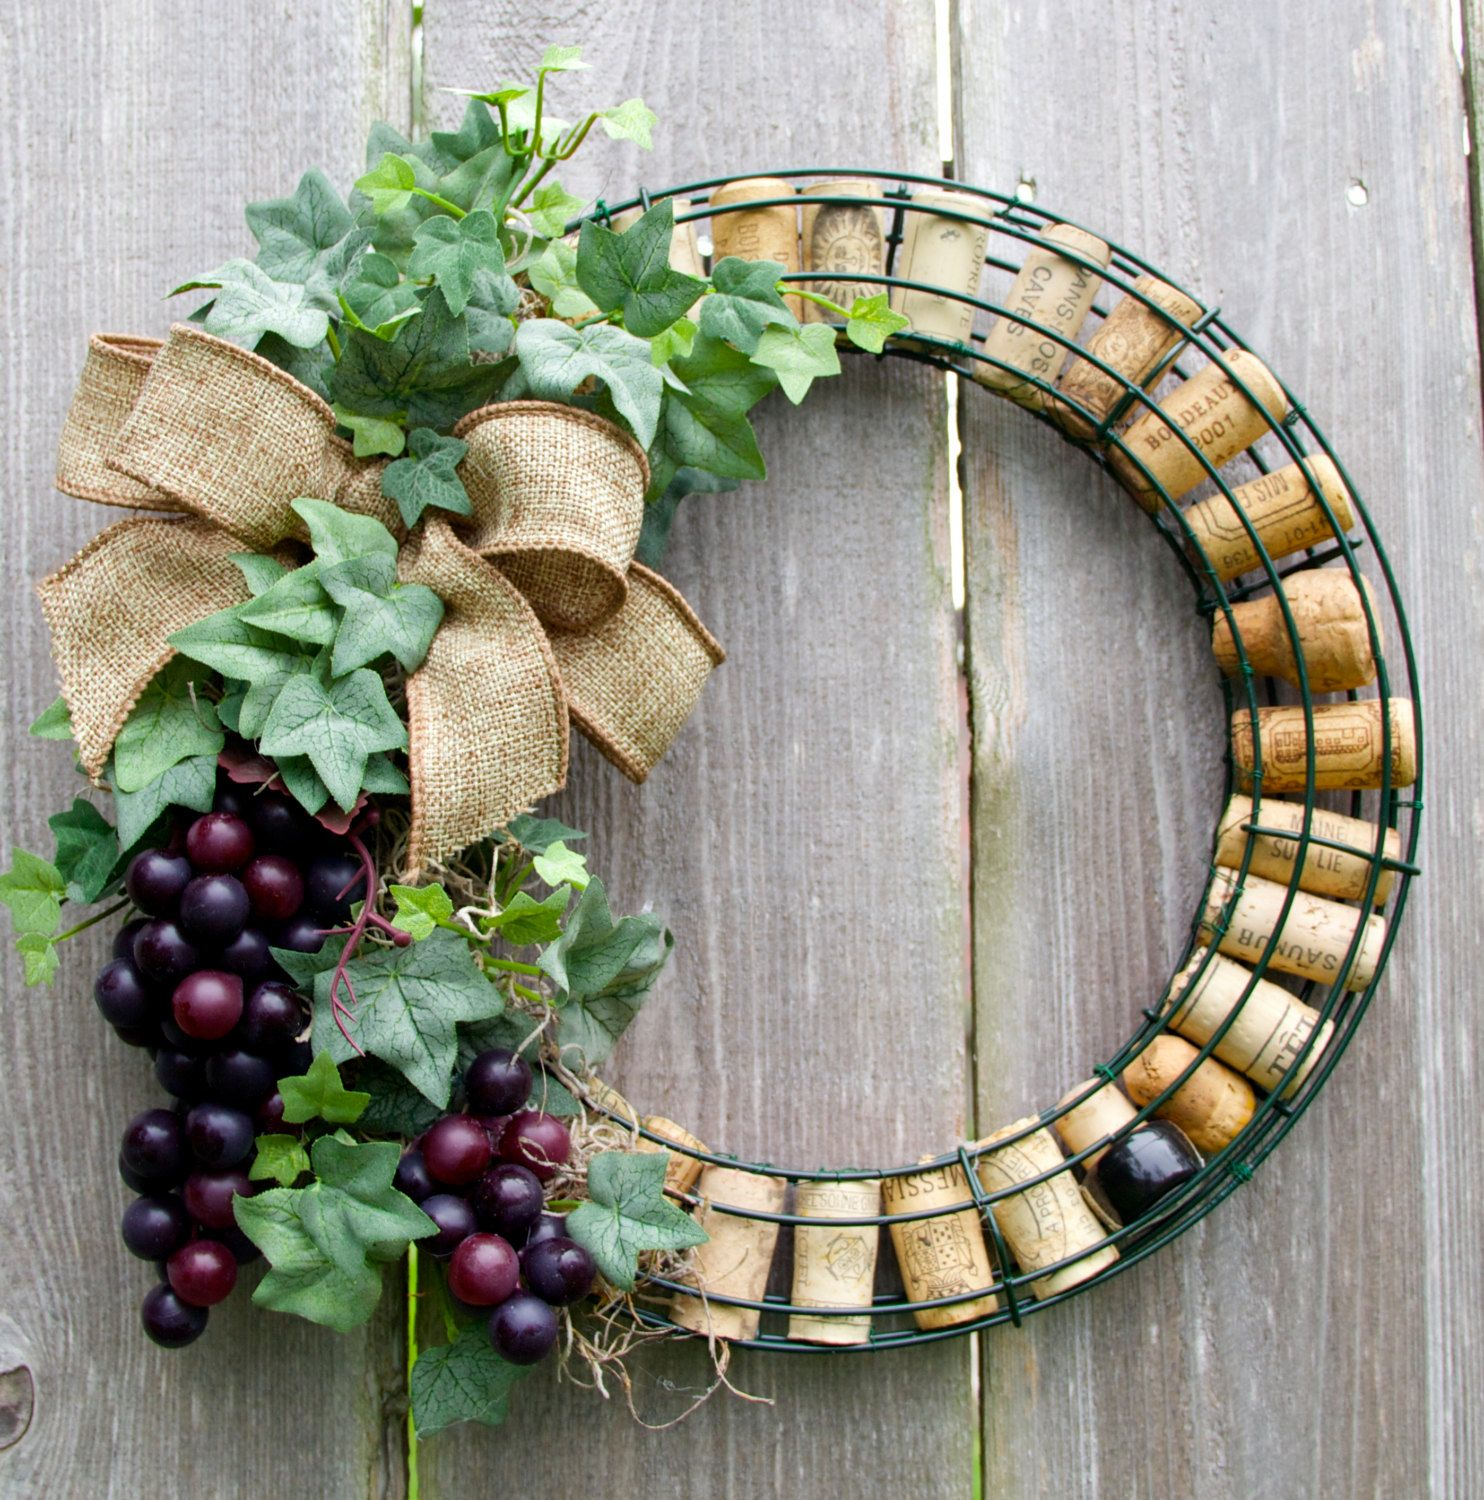 Wine Cork Wreath With Grapes By Darsisdesigns On Etsy